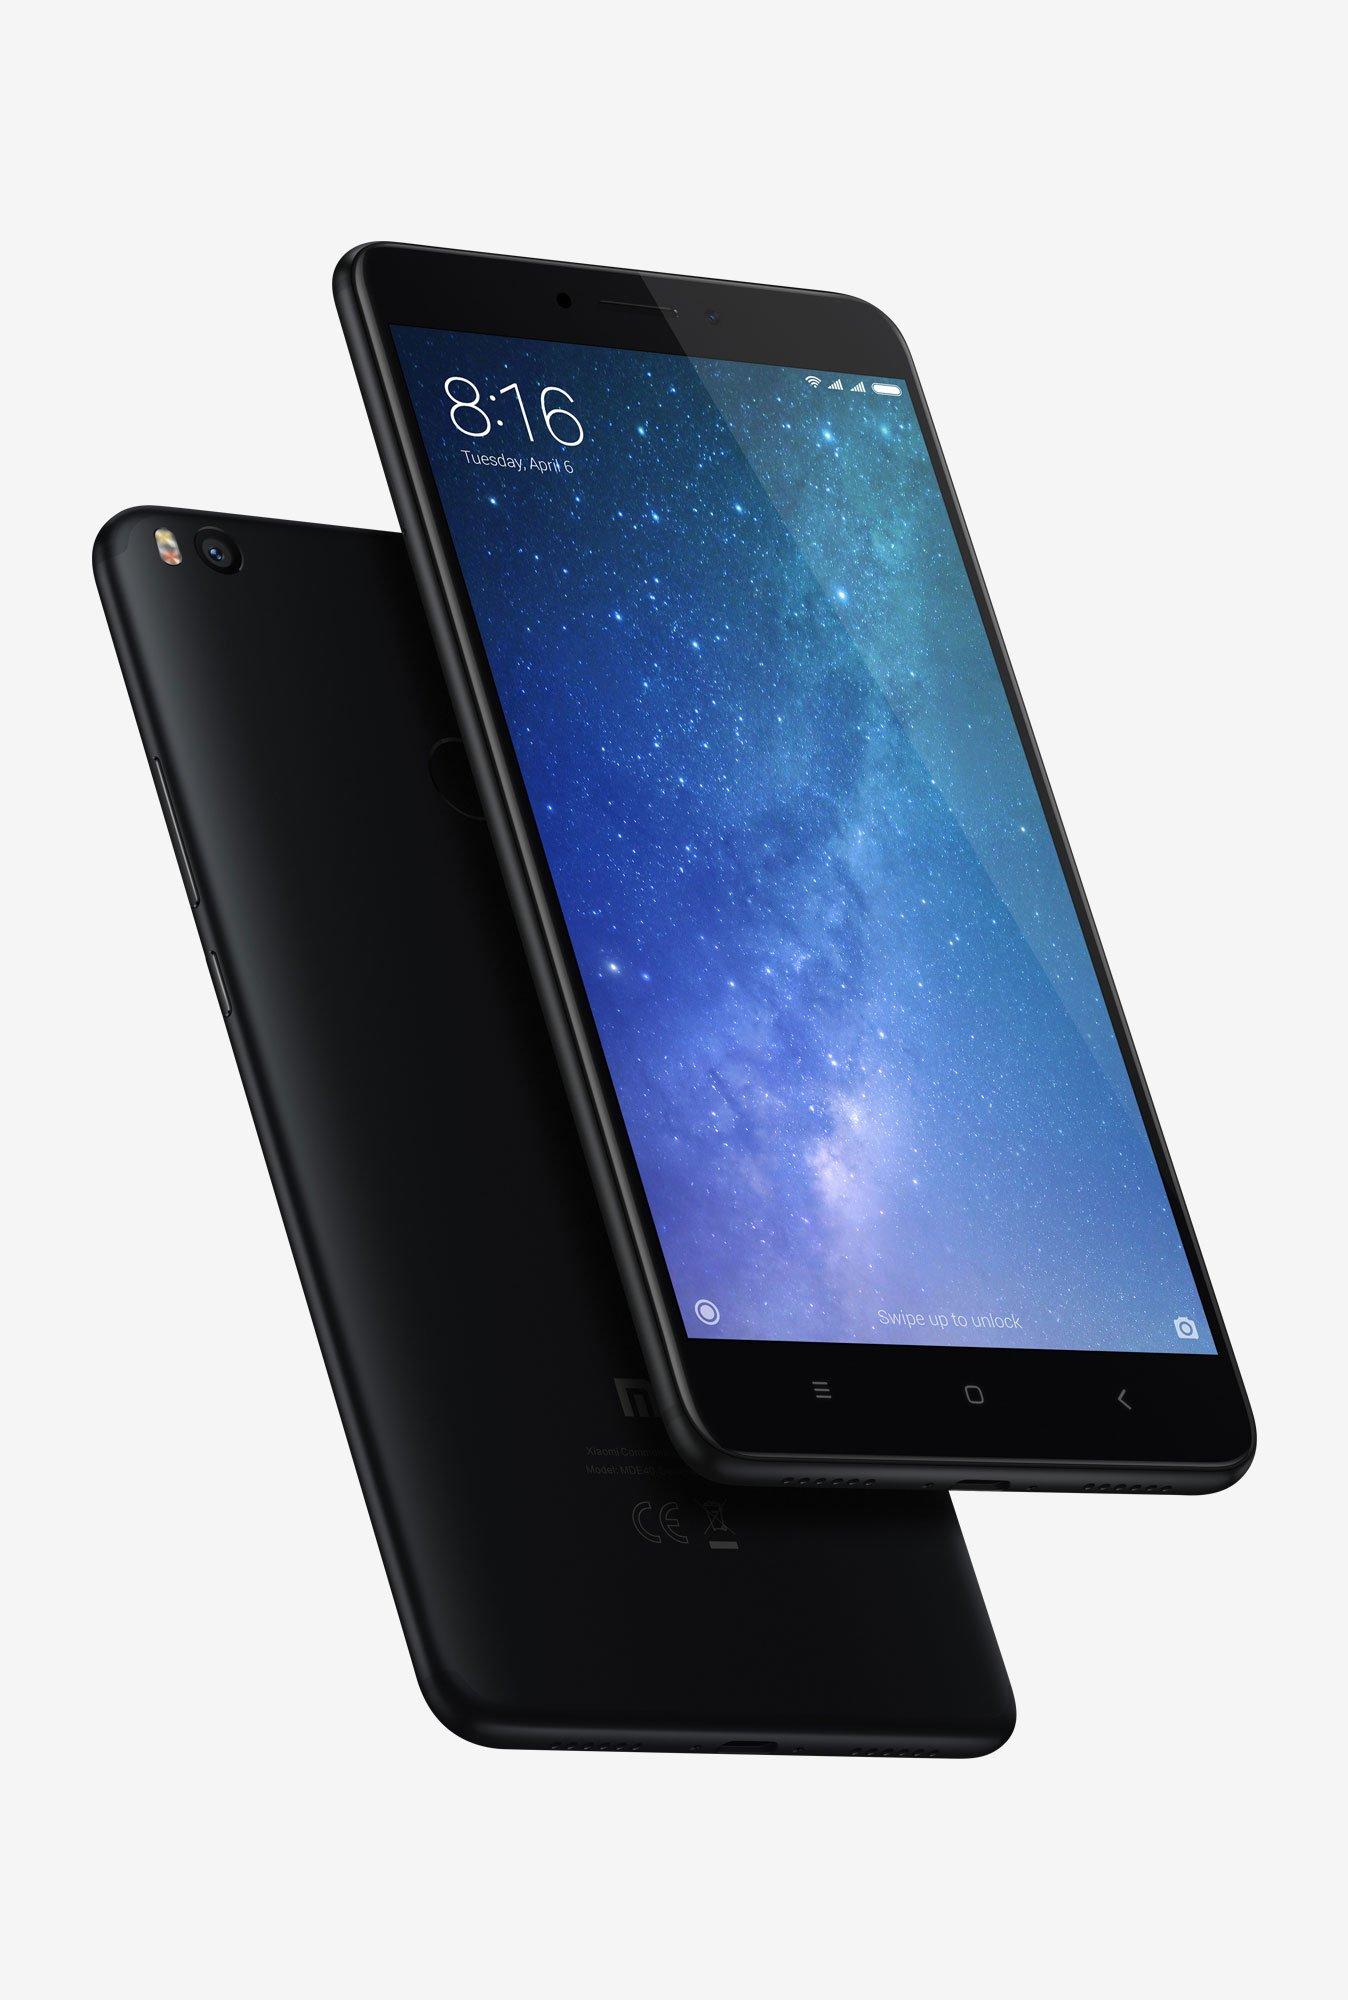 Xiaomi Mi Max 2 64GB 4GB RAM, Dual SIM 4G 5300 mAh Battery Only For Rs.13,499(HDFC Users) Or Rs.14,999